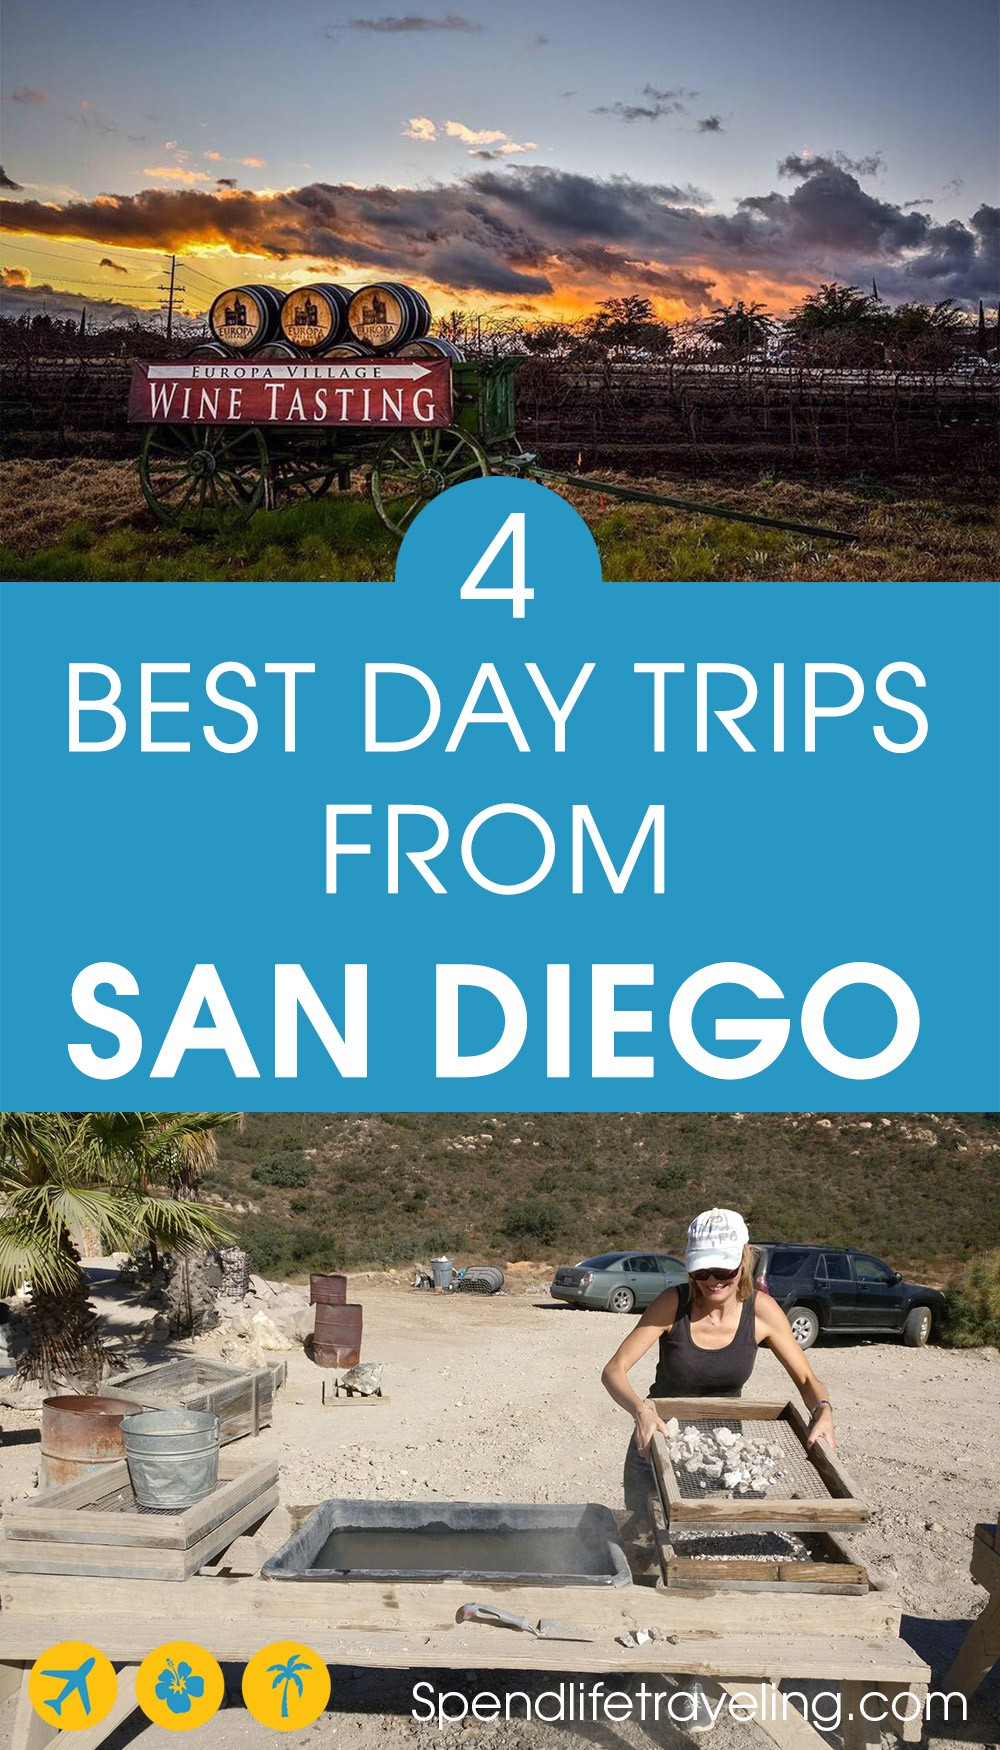 These are some of the best day trips from San Diego, California. Plus recommendations for weekend trips from San Diego.